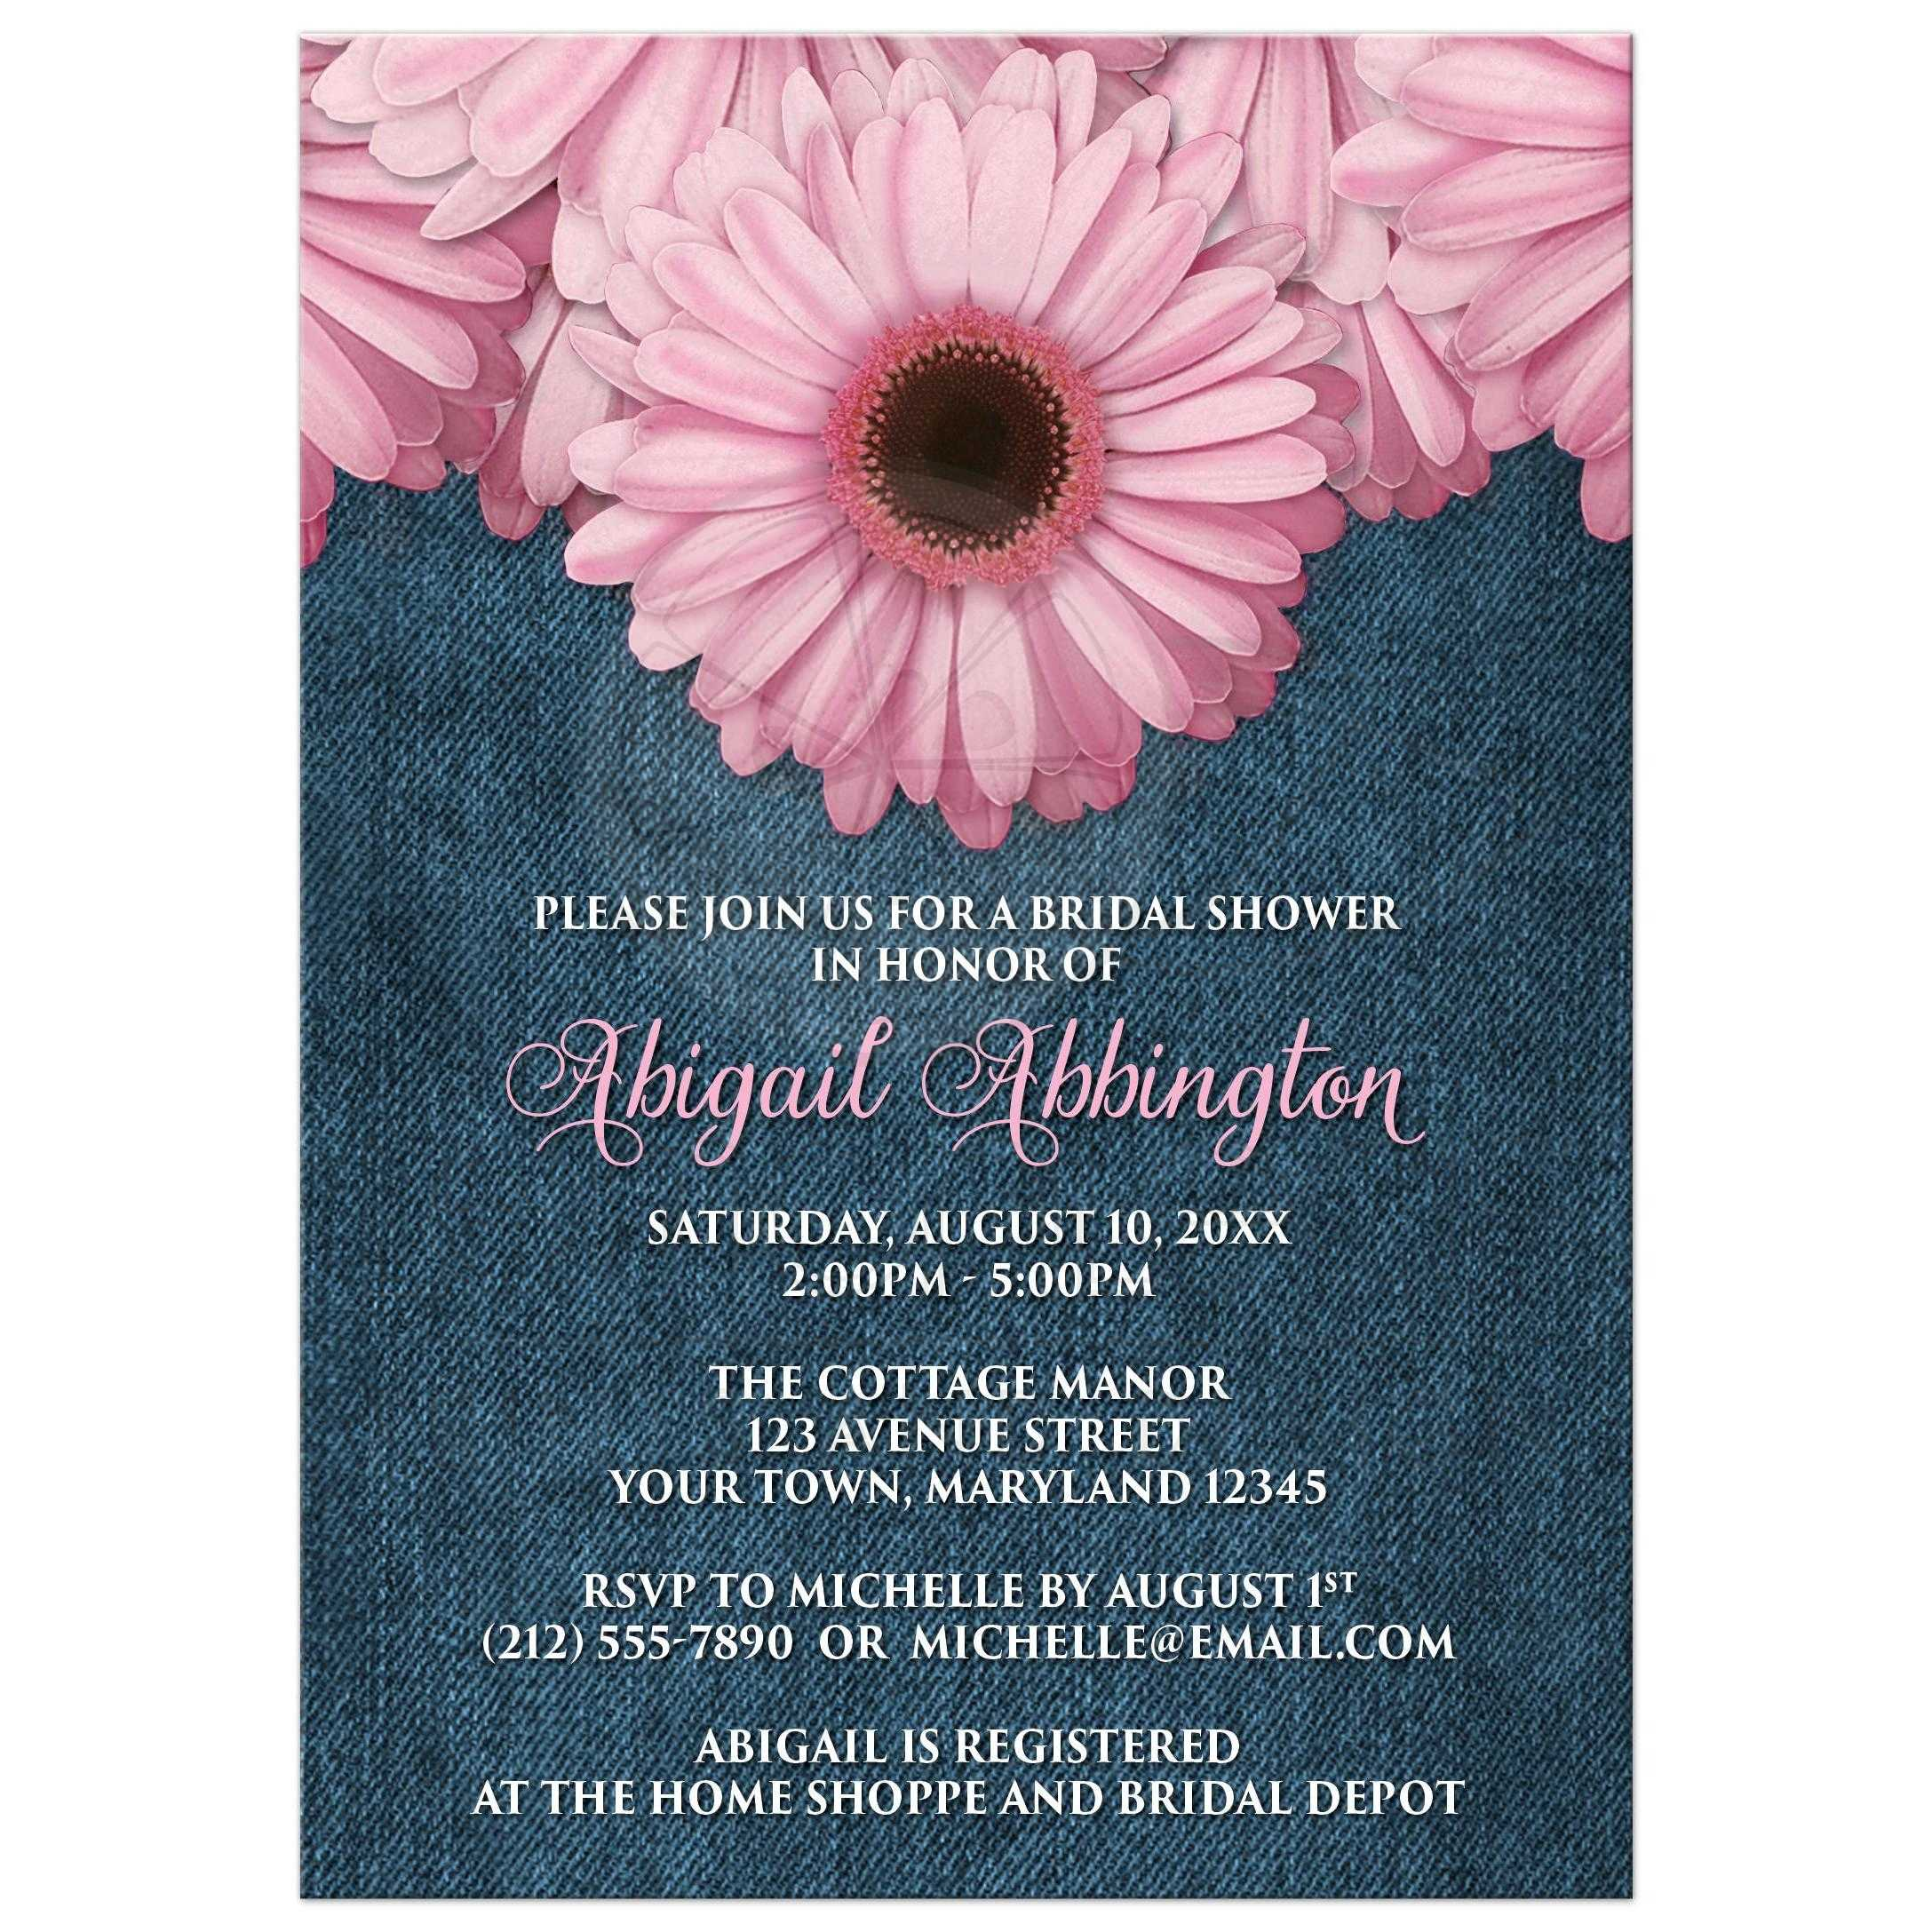 Rustic Daisy Wedding Invitations: Bridal Shower Invitations